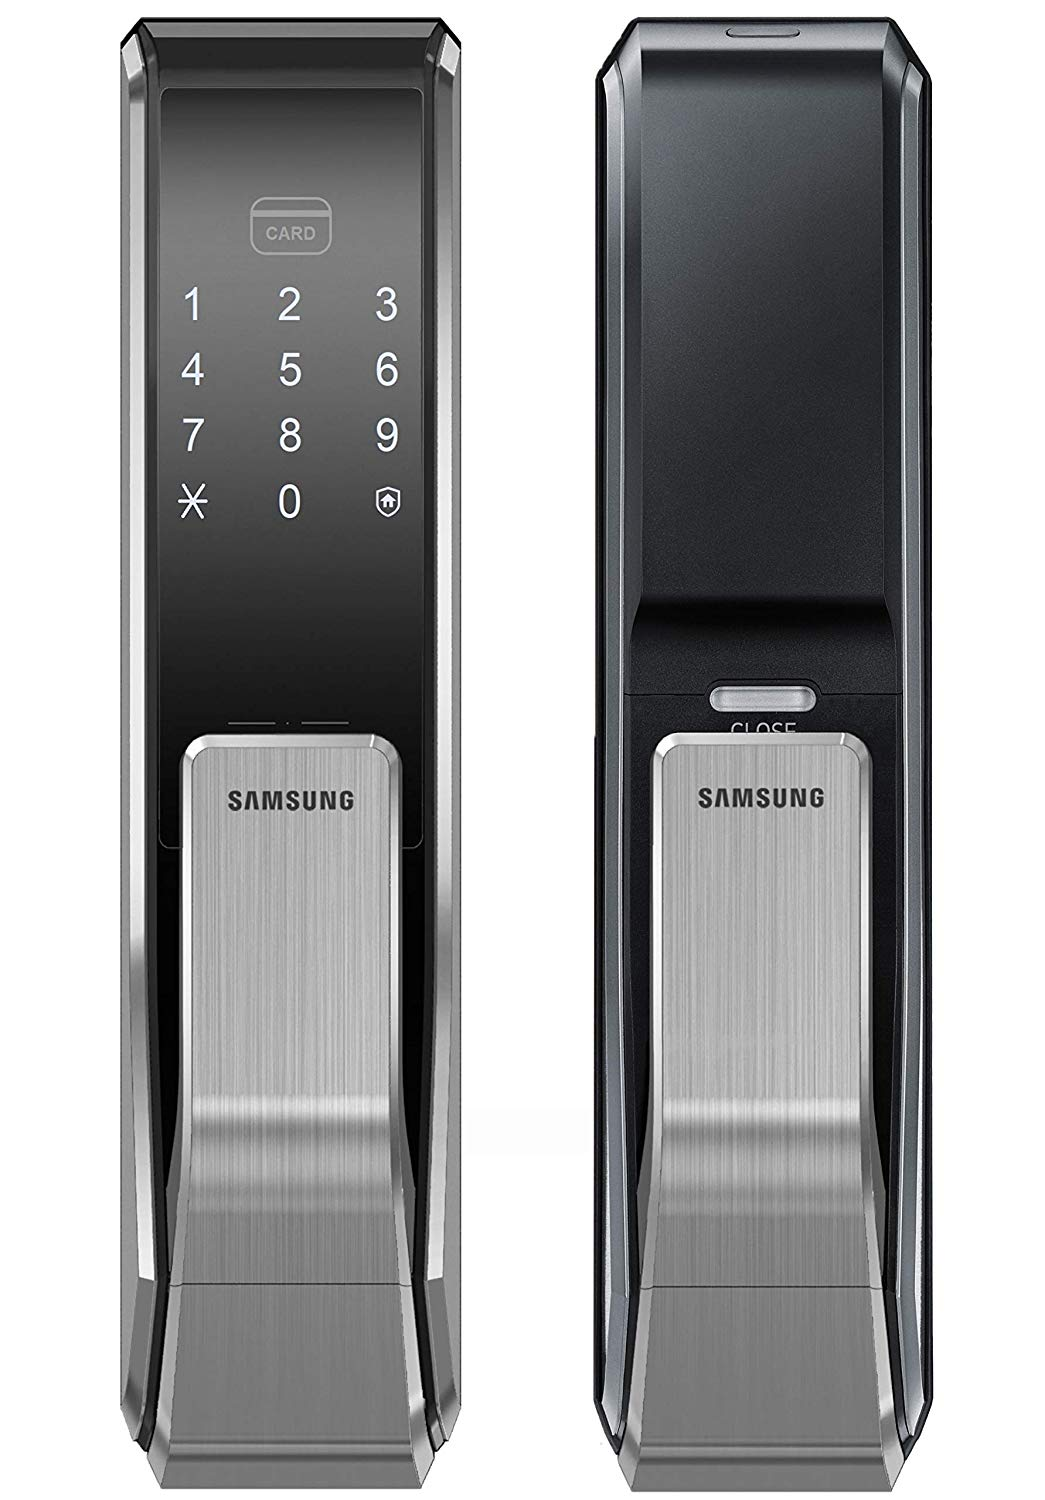 [REFURBISHED] Samsung SHS-P717 Push Pull Biometric Touchscreen Door Lock - HDVideoDepot